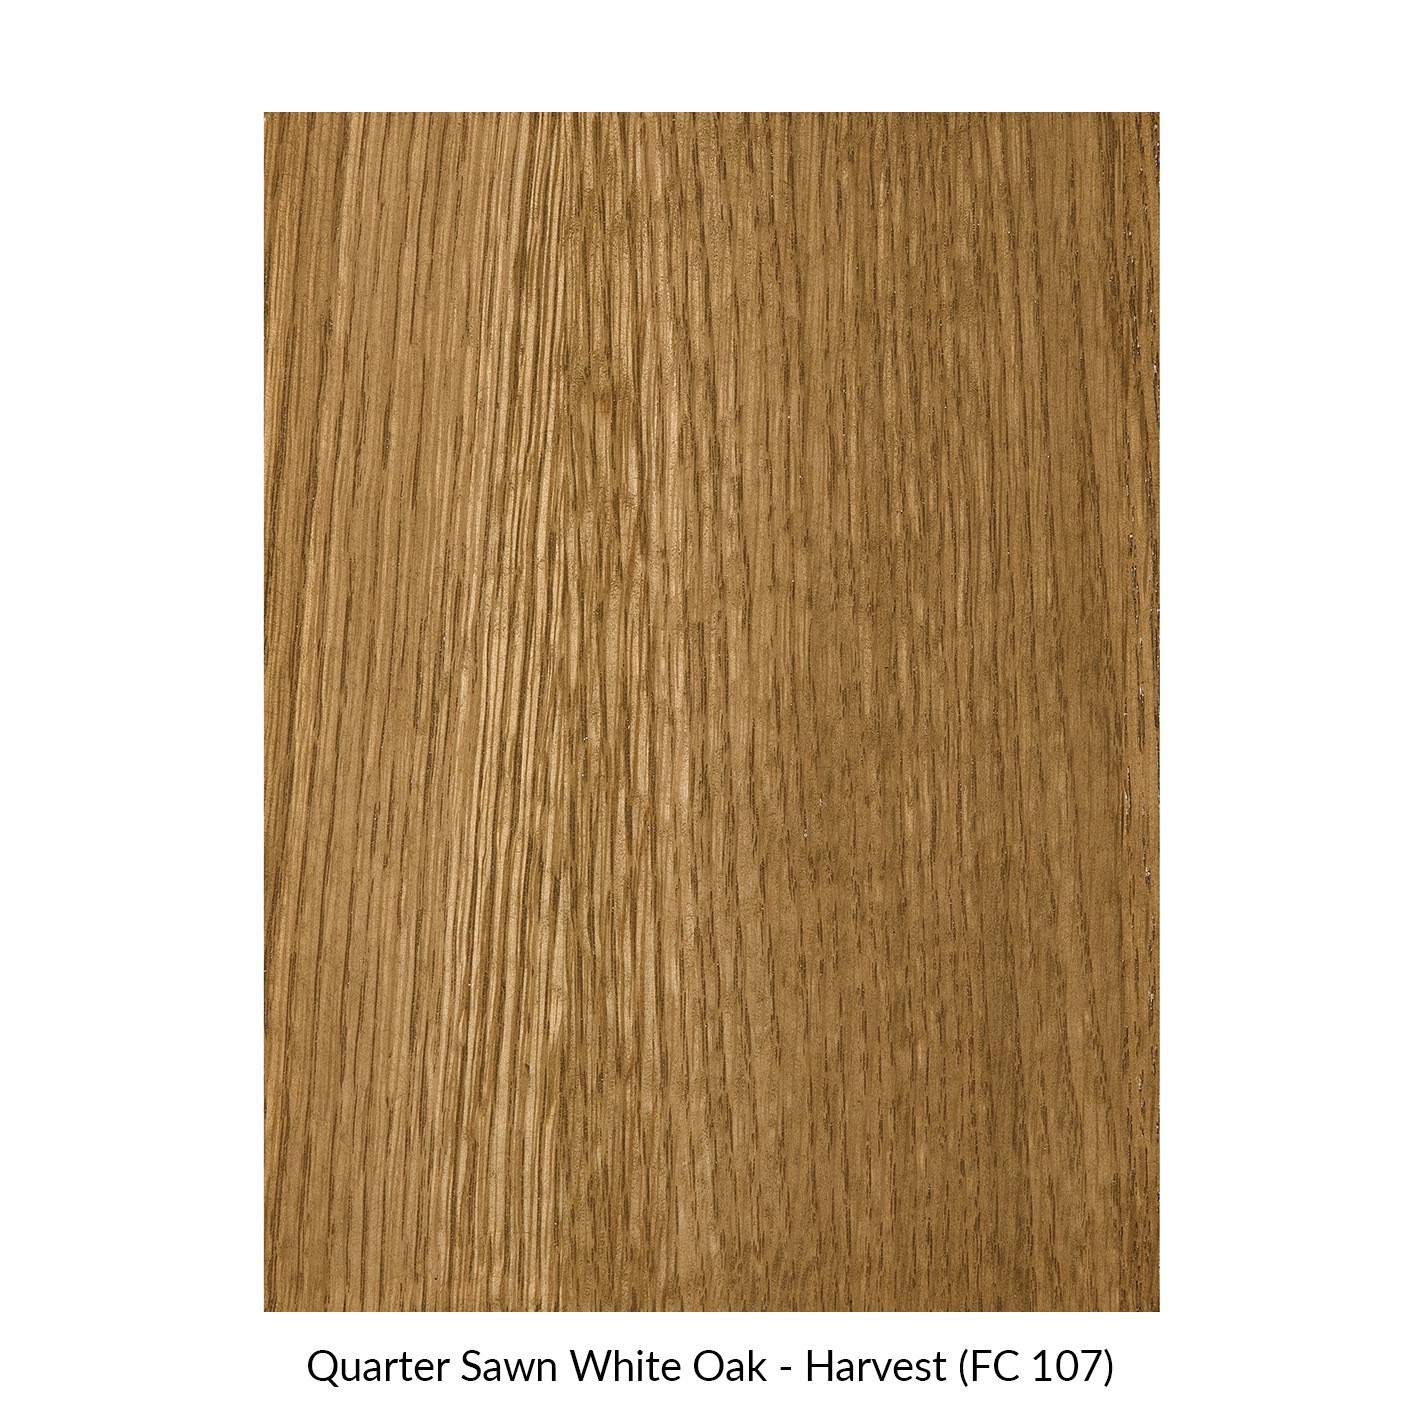 spectrum-quarter-sawn-white-oak-harvest-fc-107.jpg